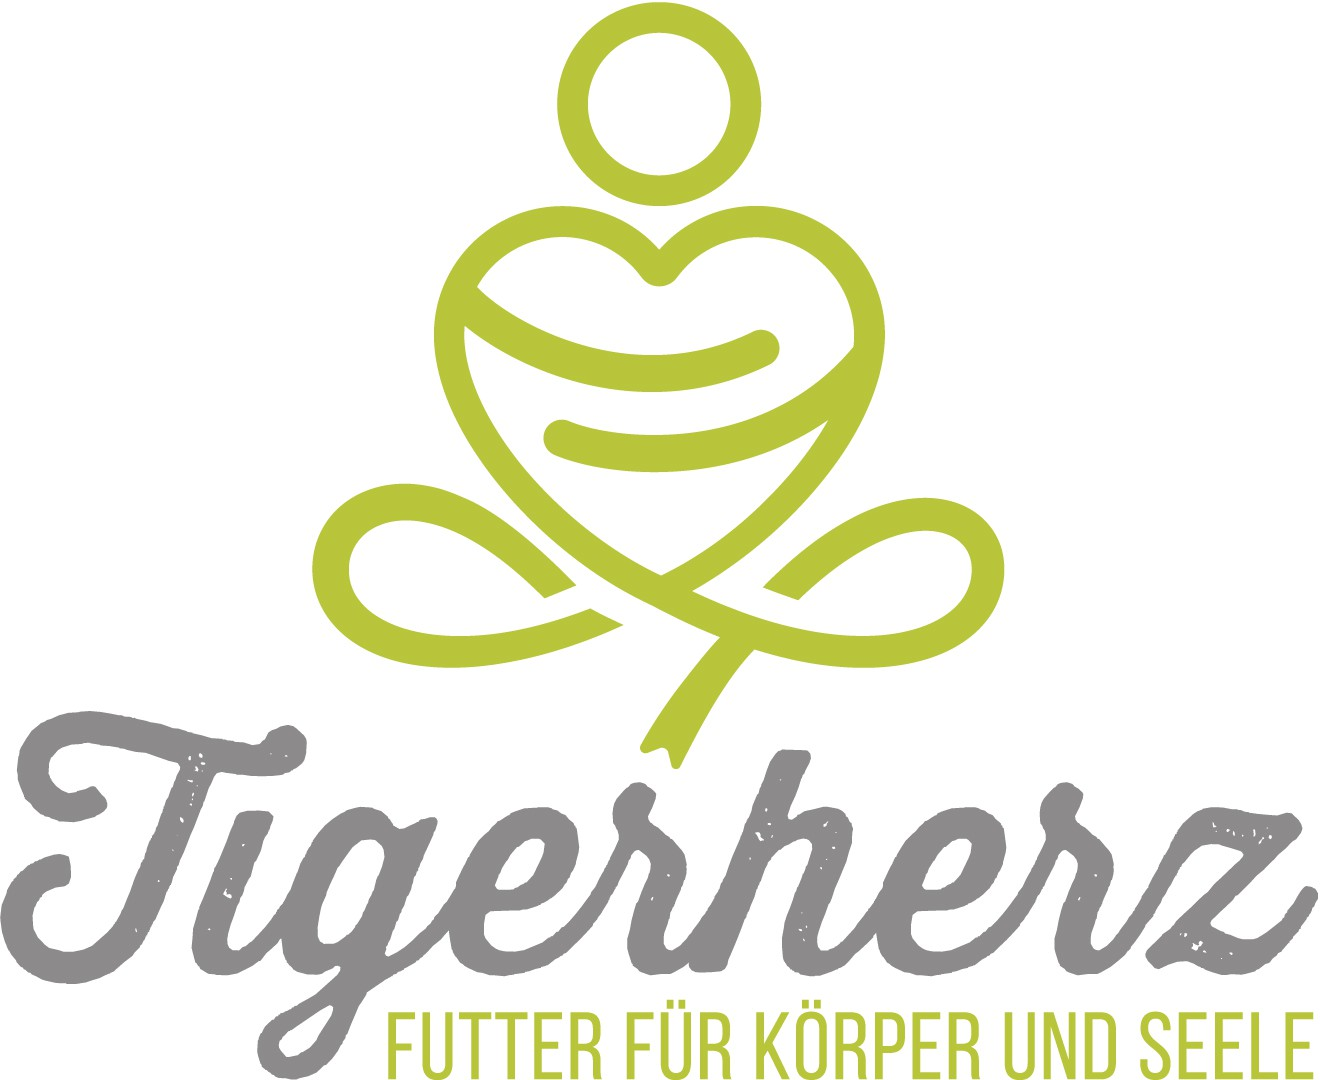 Yin-Yoga/Functional Training/Blogger needs her first logo to start a new life :)